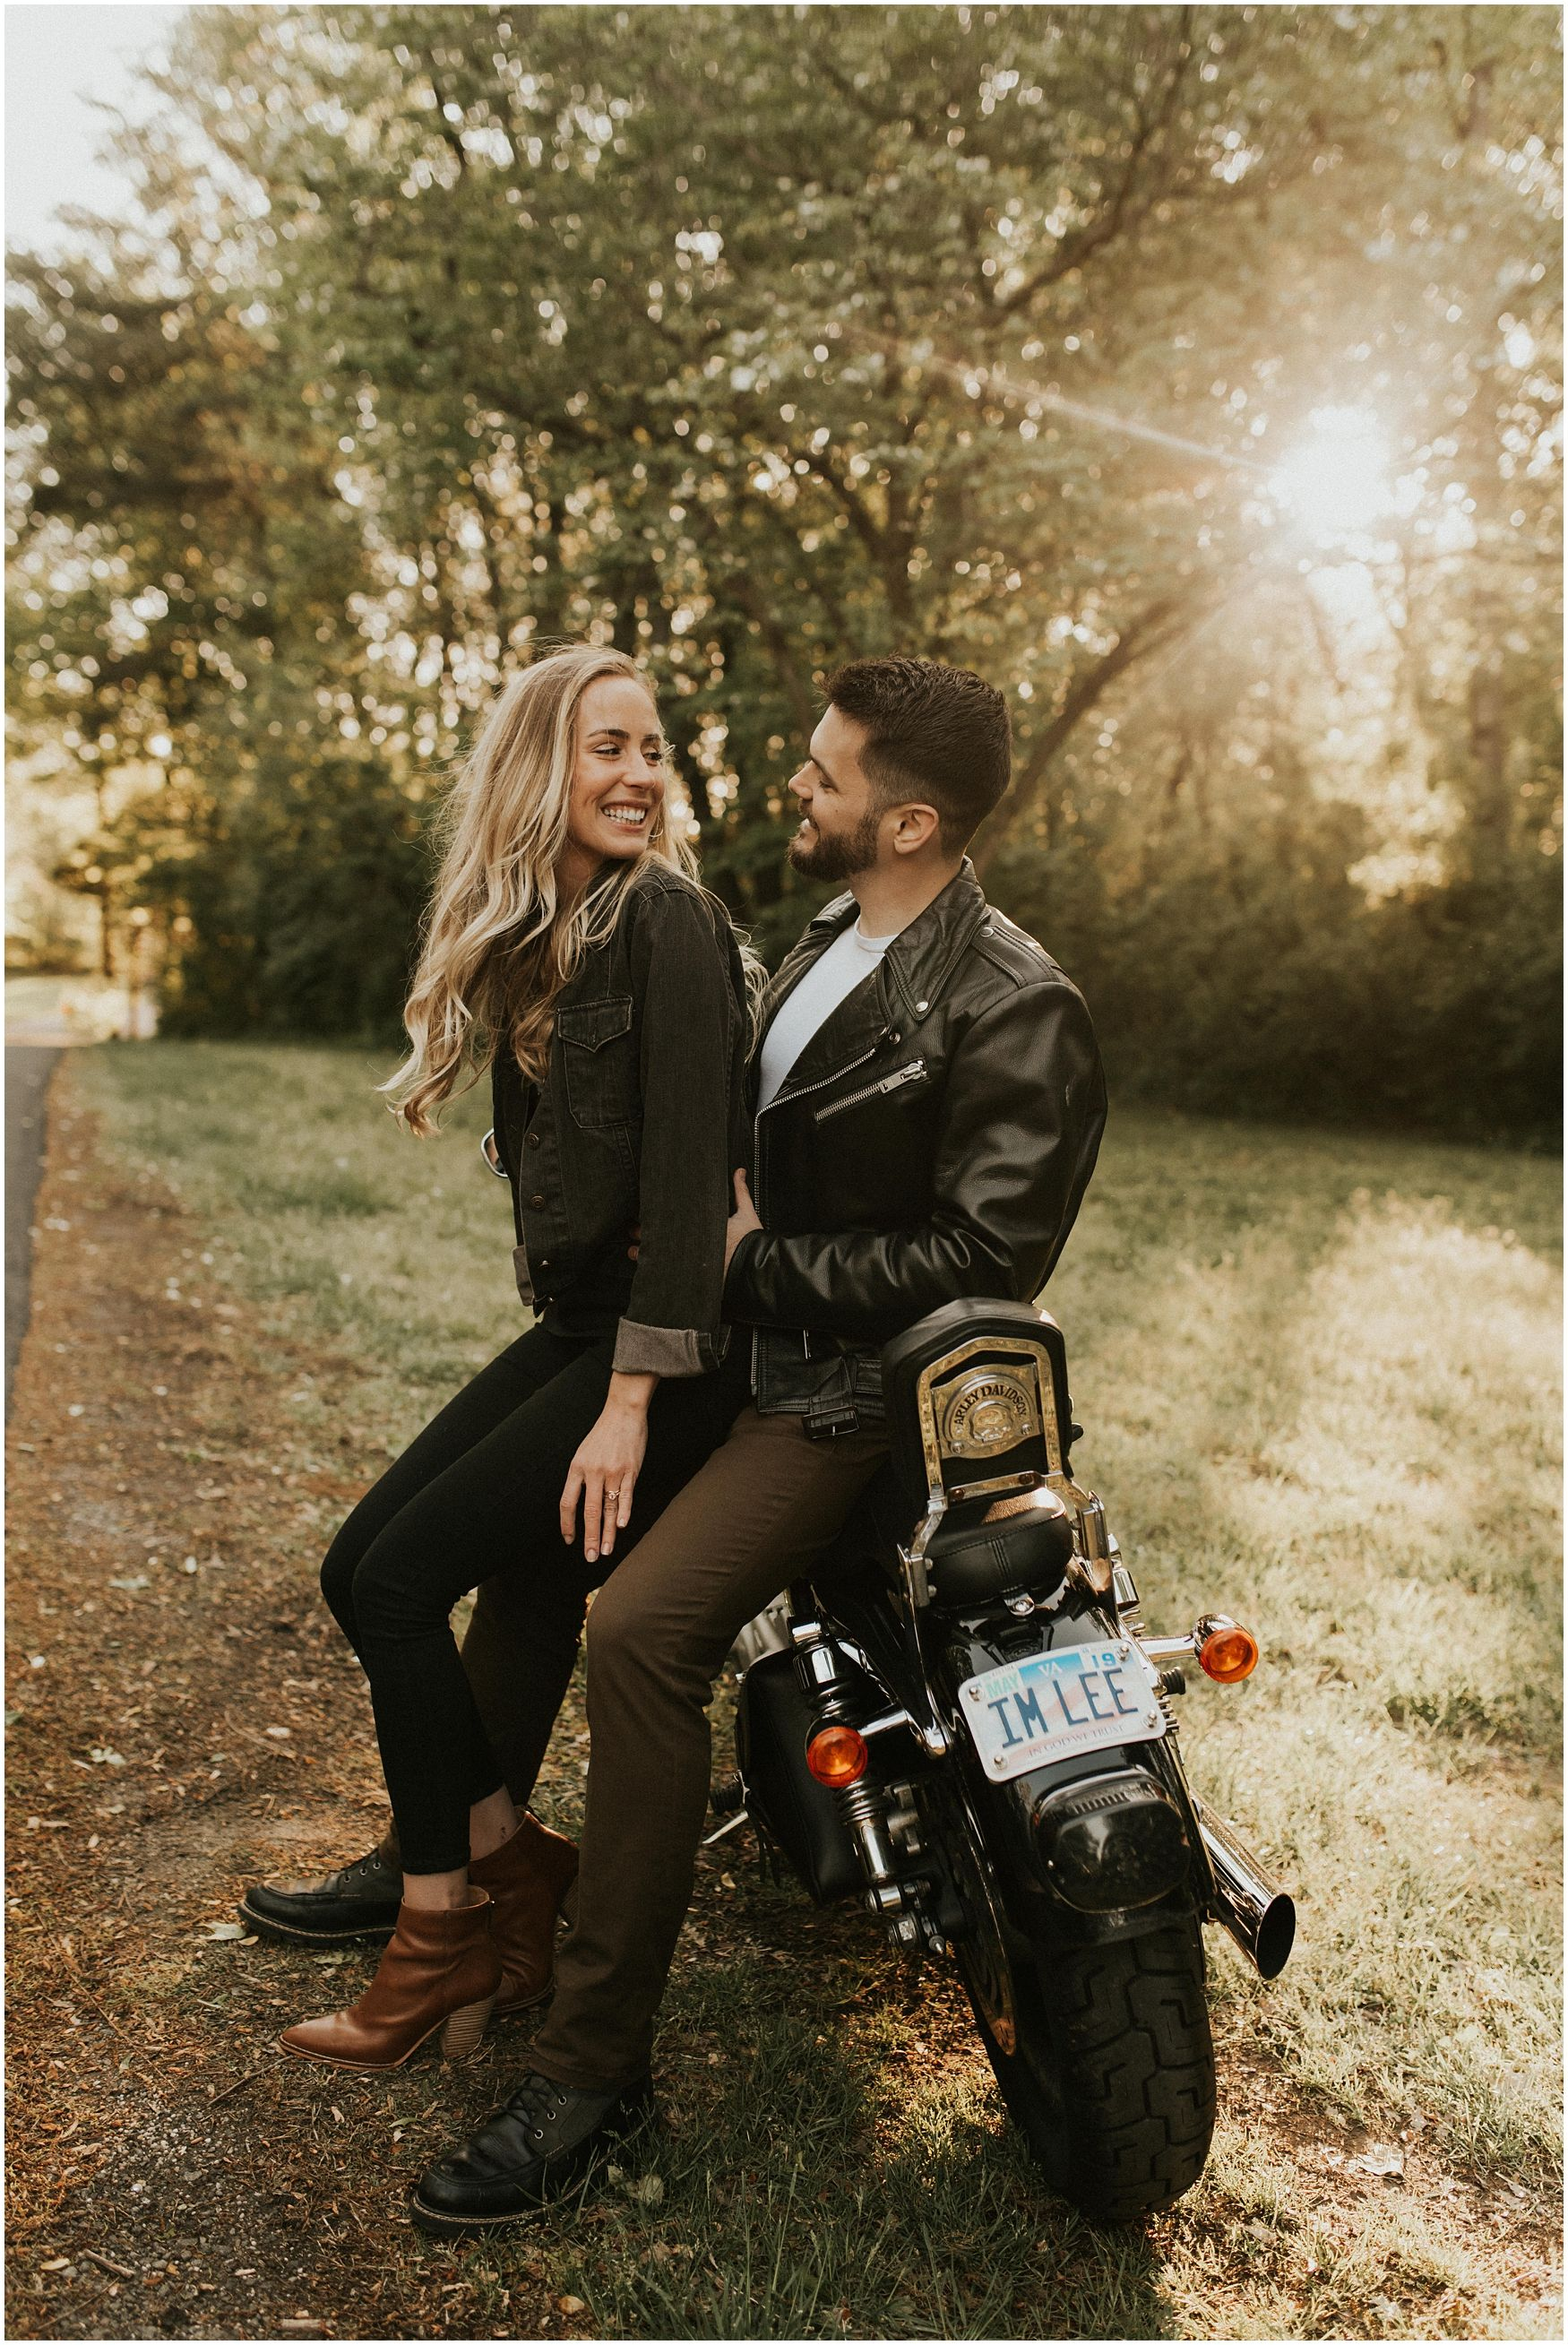 Edgy Motorcycle Couples Session Motorcycle Engagement Photos Motorcycle Couple Couples Engagement Photos